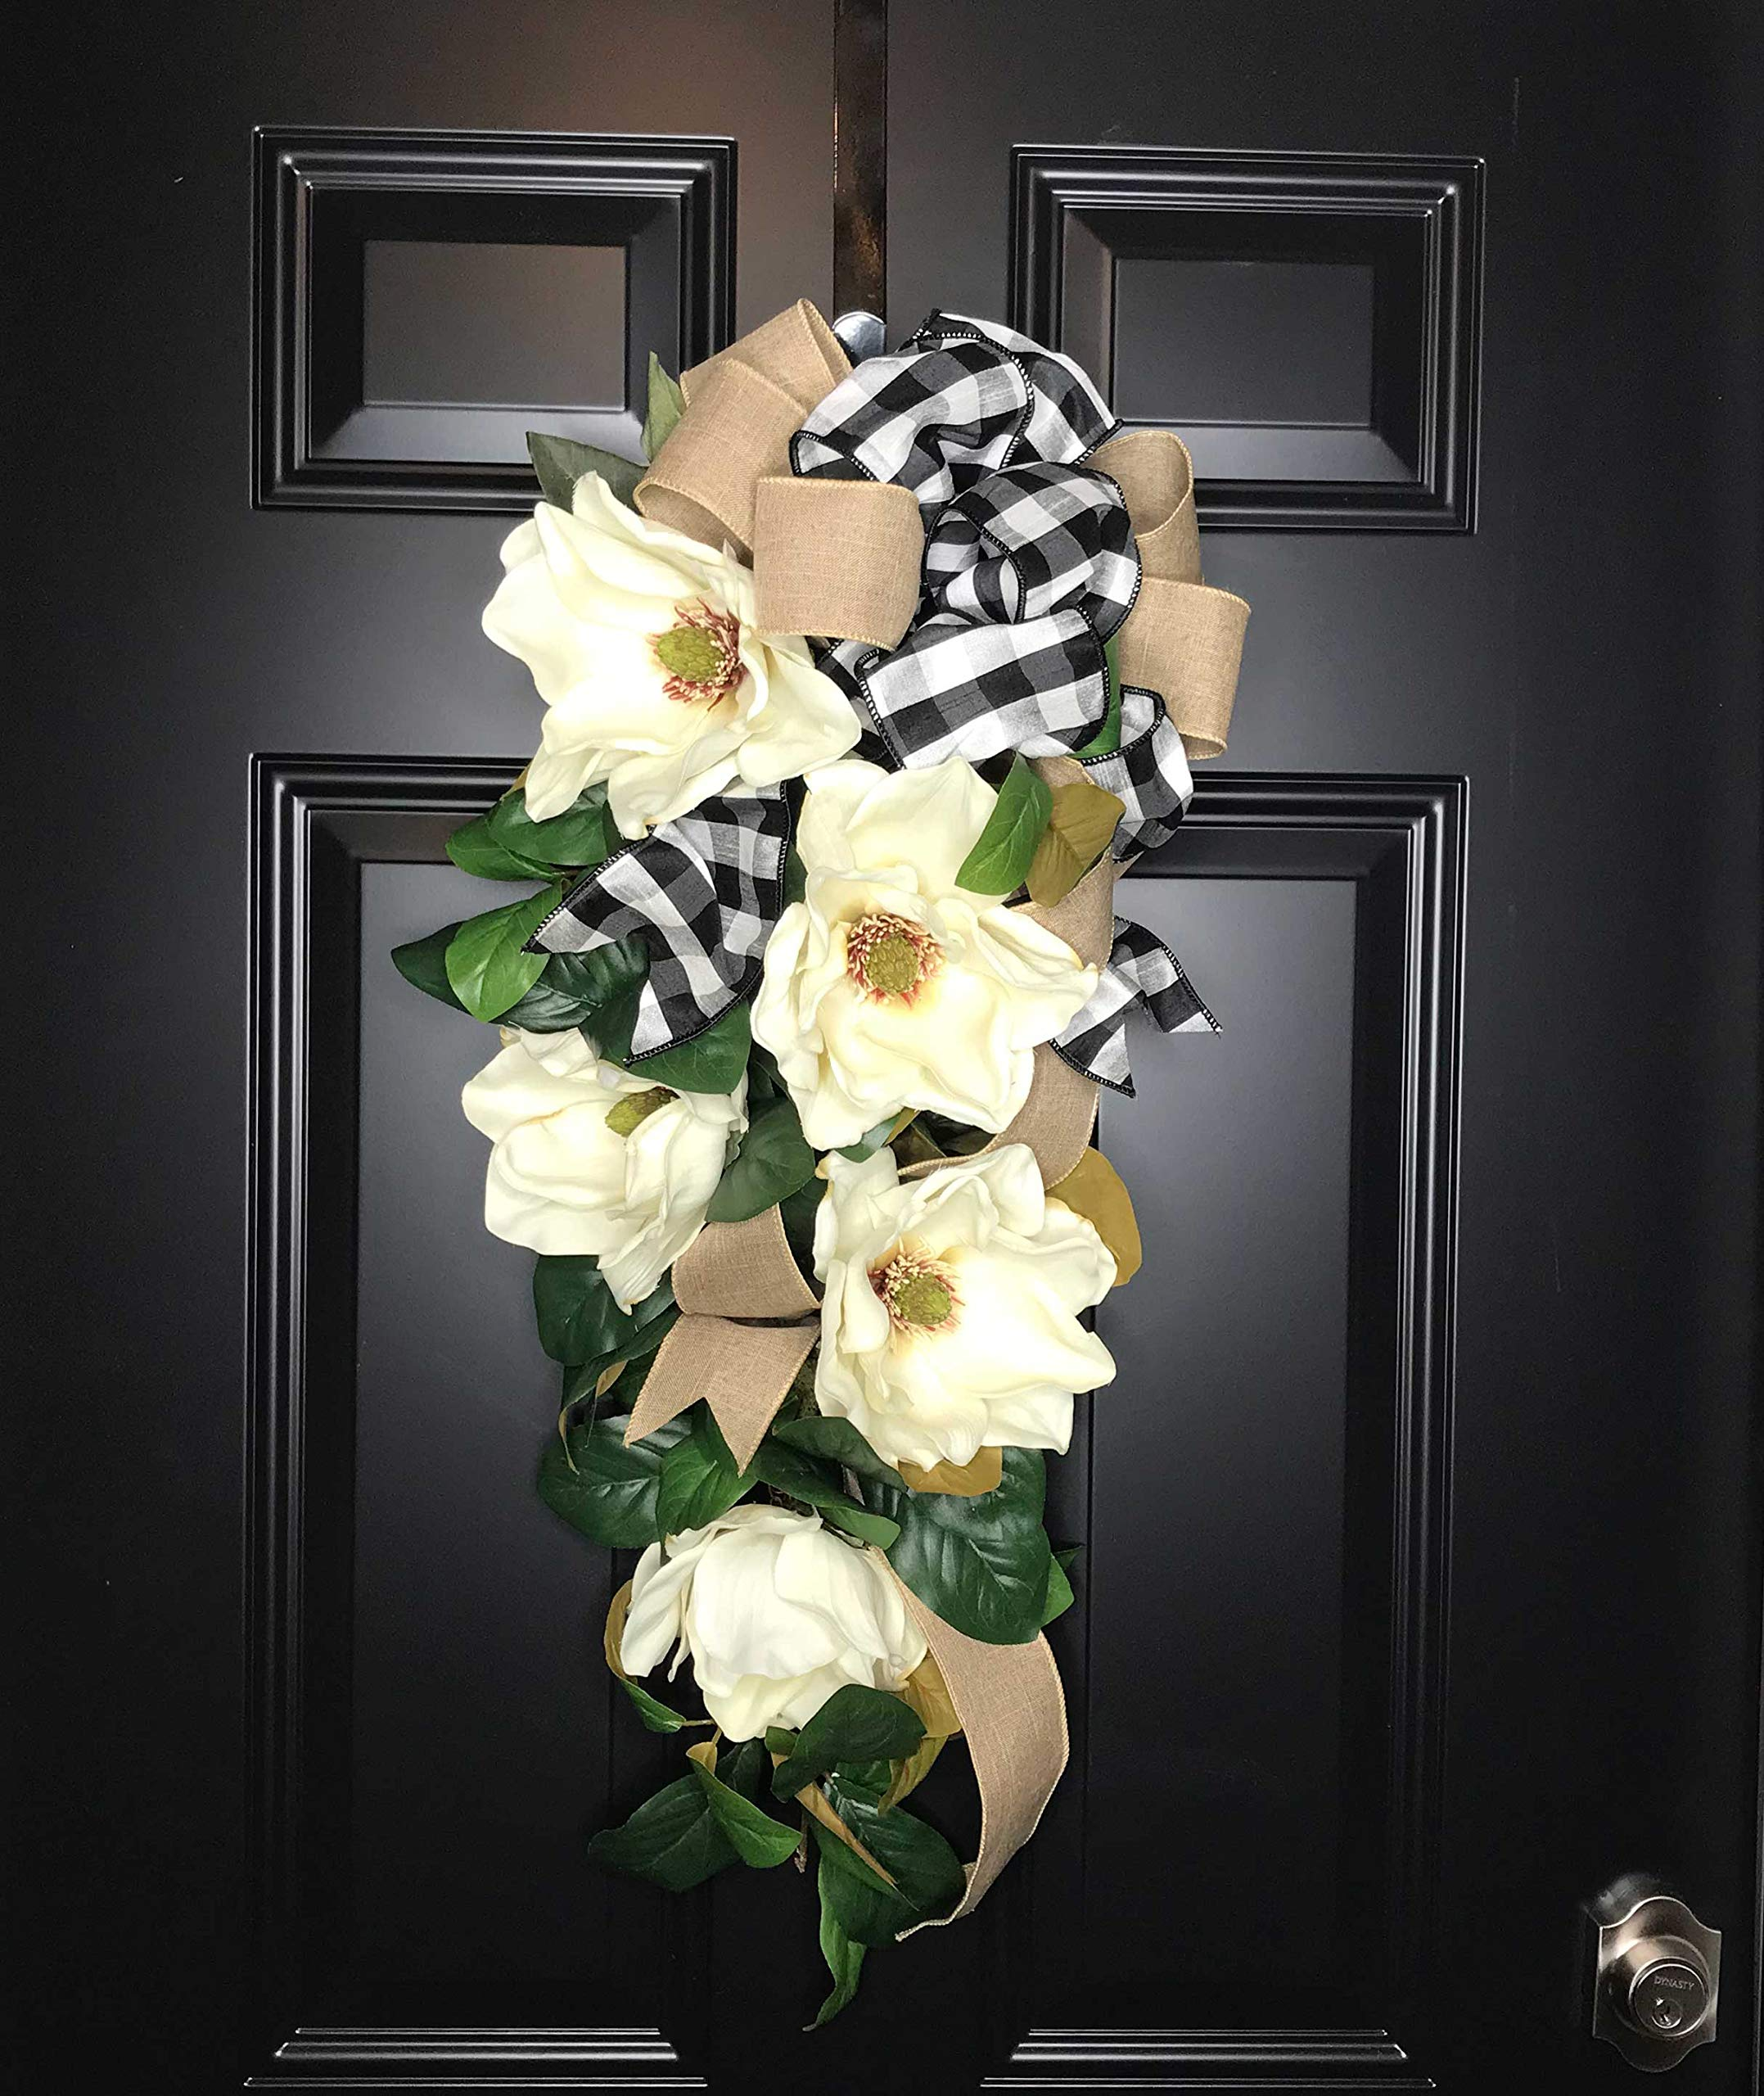 Large Southern Magnolia Teardrop Floral Swag Wreath w/Buffalo Plaid/Check Bow for Front Door Porch Indoor Wall Farmhouse Decor Spring Springtime Summer Summertime Year Round, Handmade, 30''L x 18'' W by Wreath and Vine, LLC (Image #7)